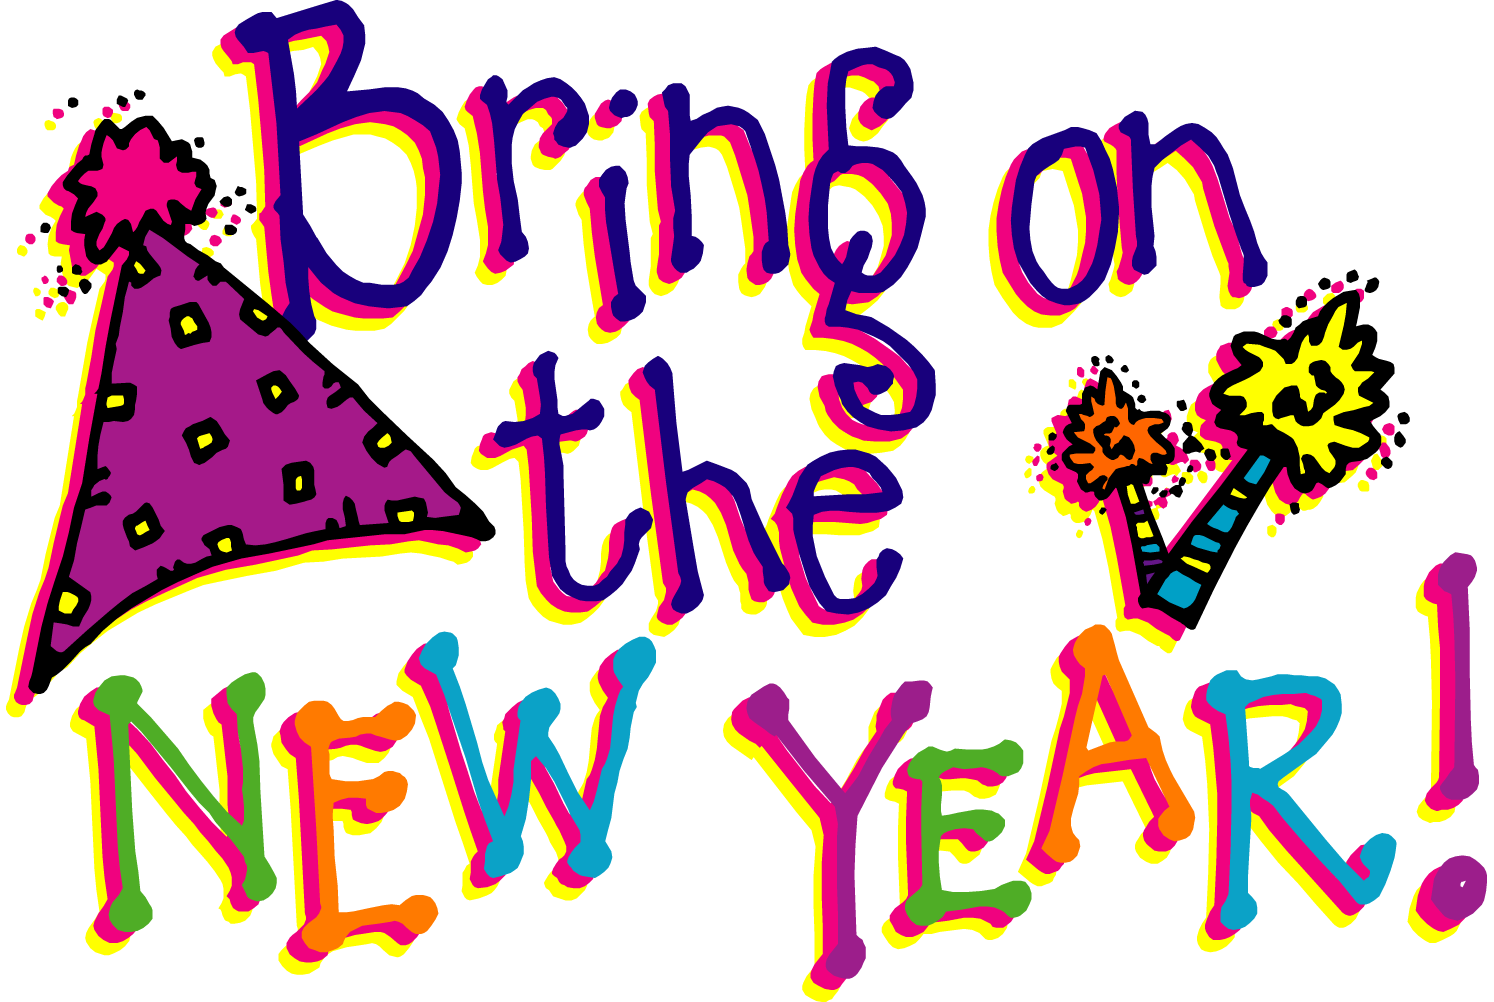 Happy new year clip art at lakeshore learning.